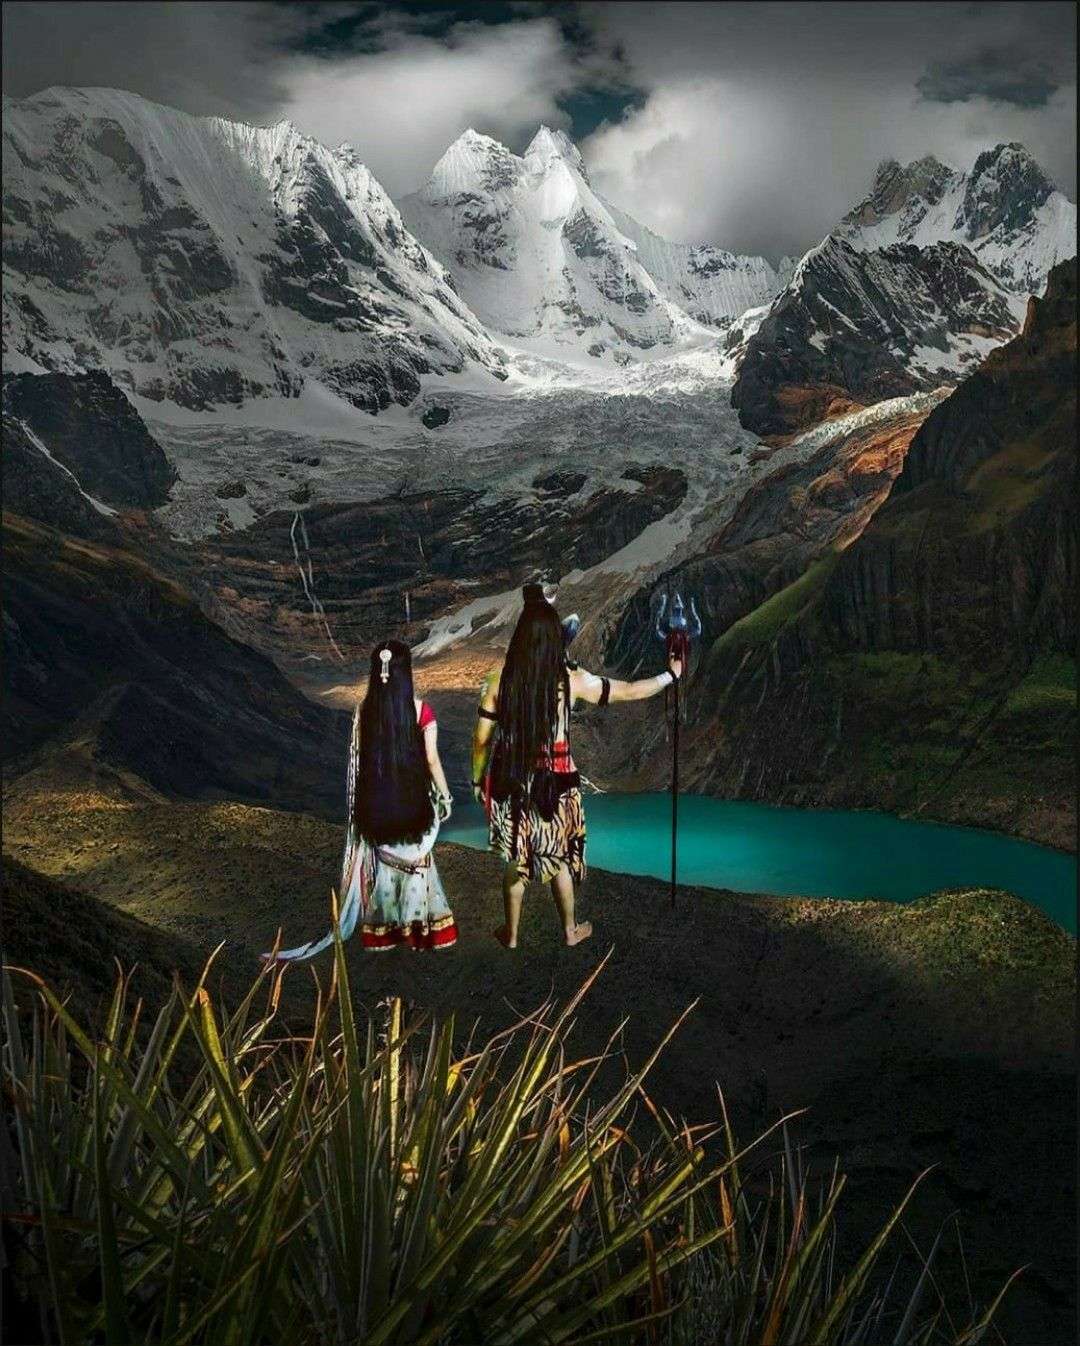 Lord Shiva The Warrior On Mount Kailash In Creative Art Painting Lord Shiva Painting Shiva Photos Lord Shiva